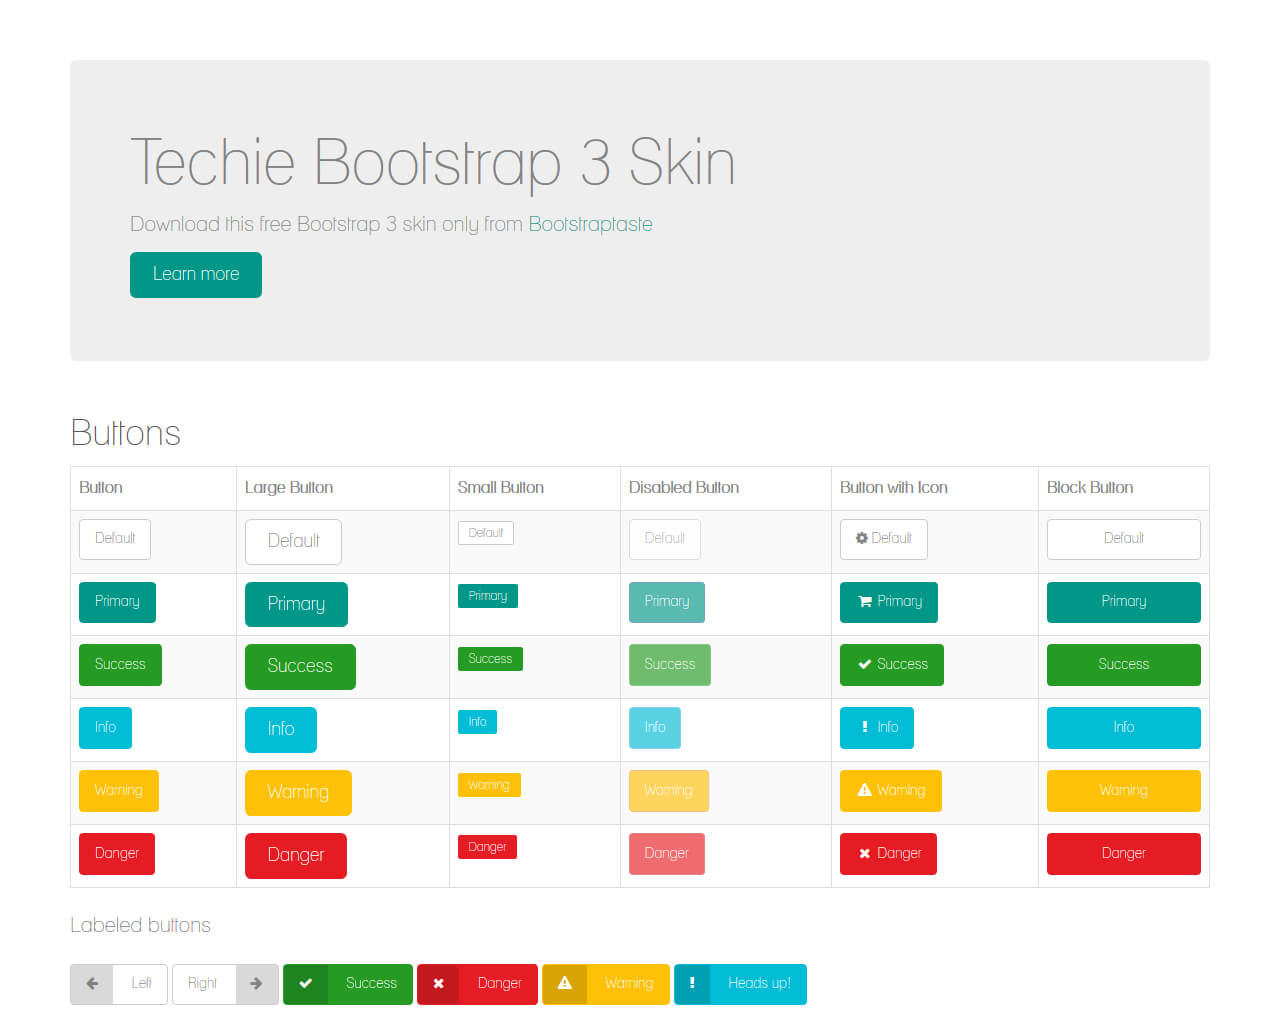 Techie - Free skin for Bootstrap 3